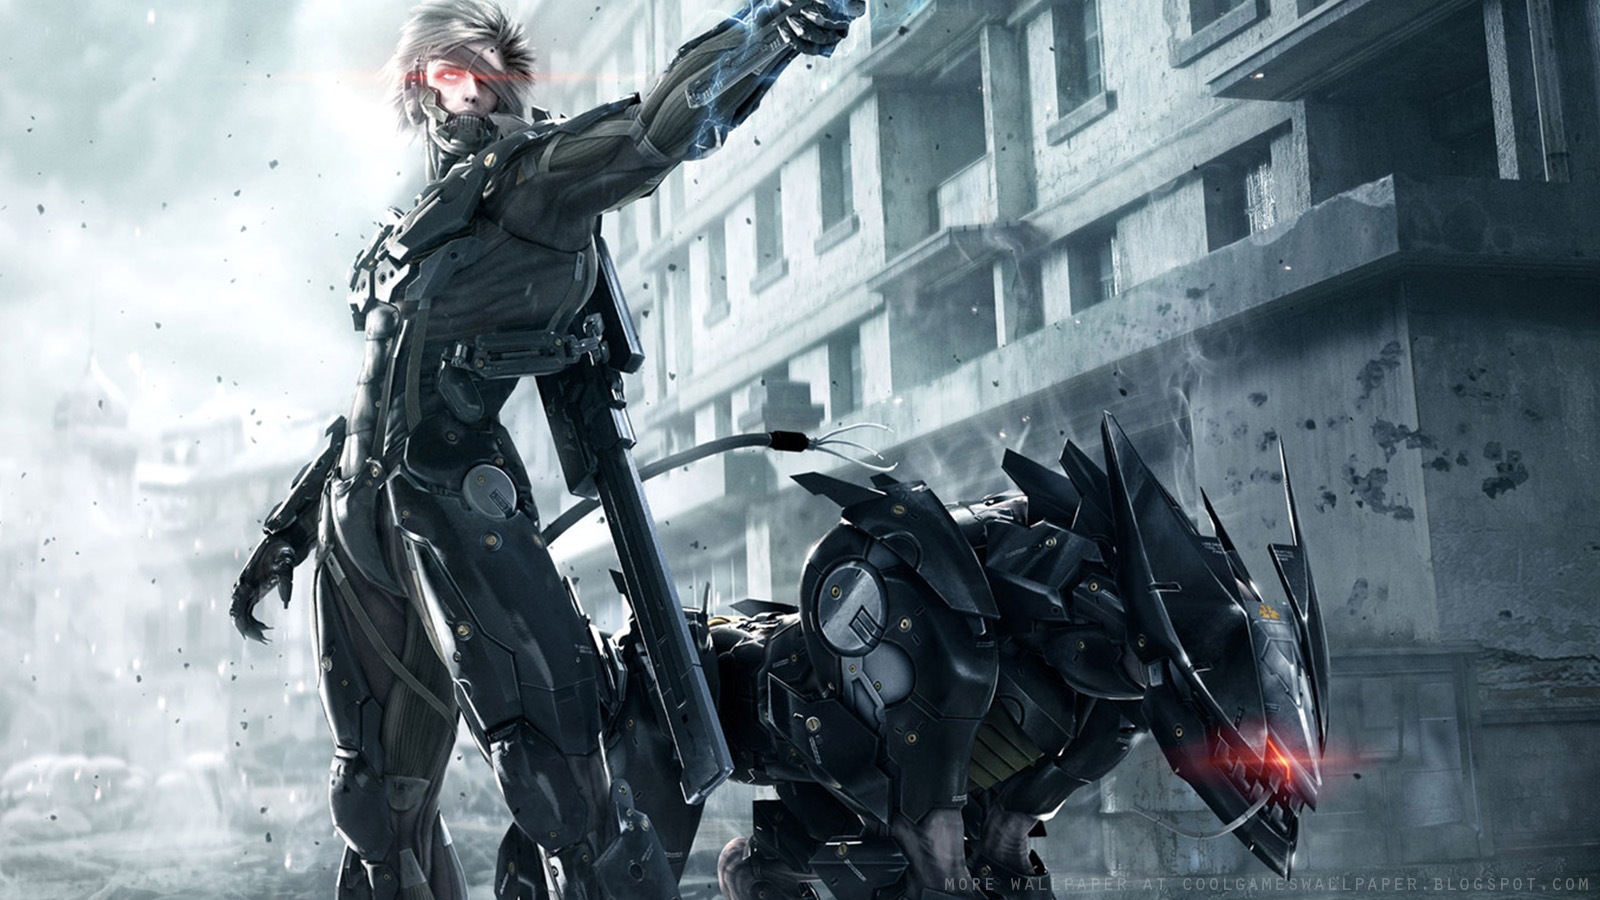 Metal Gear Rising  Revengeance Wallpapers   Cool Games Wallpaper Metal Gear Rising  Revengeance Wallpapers